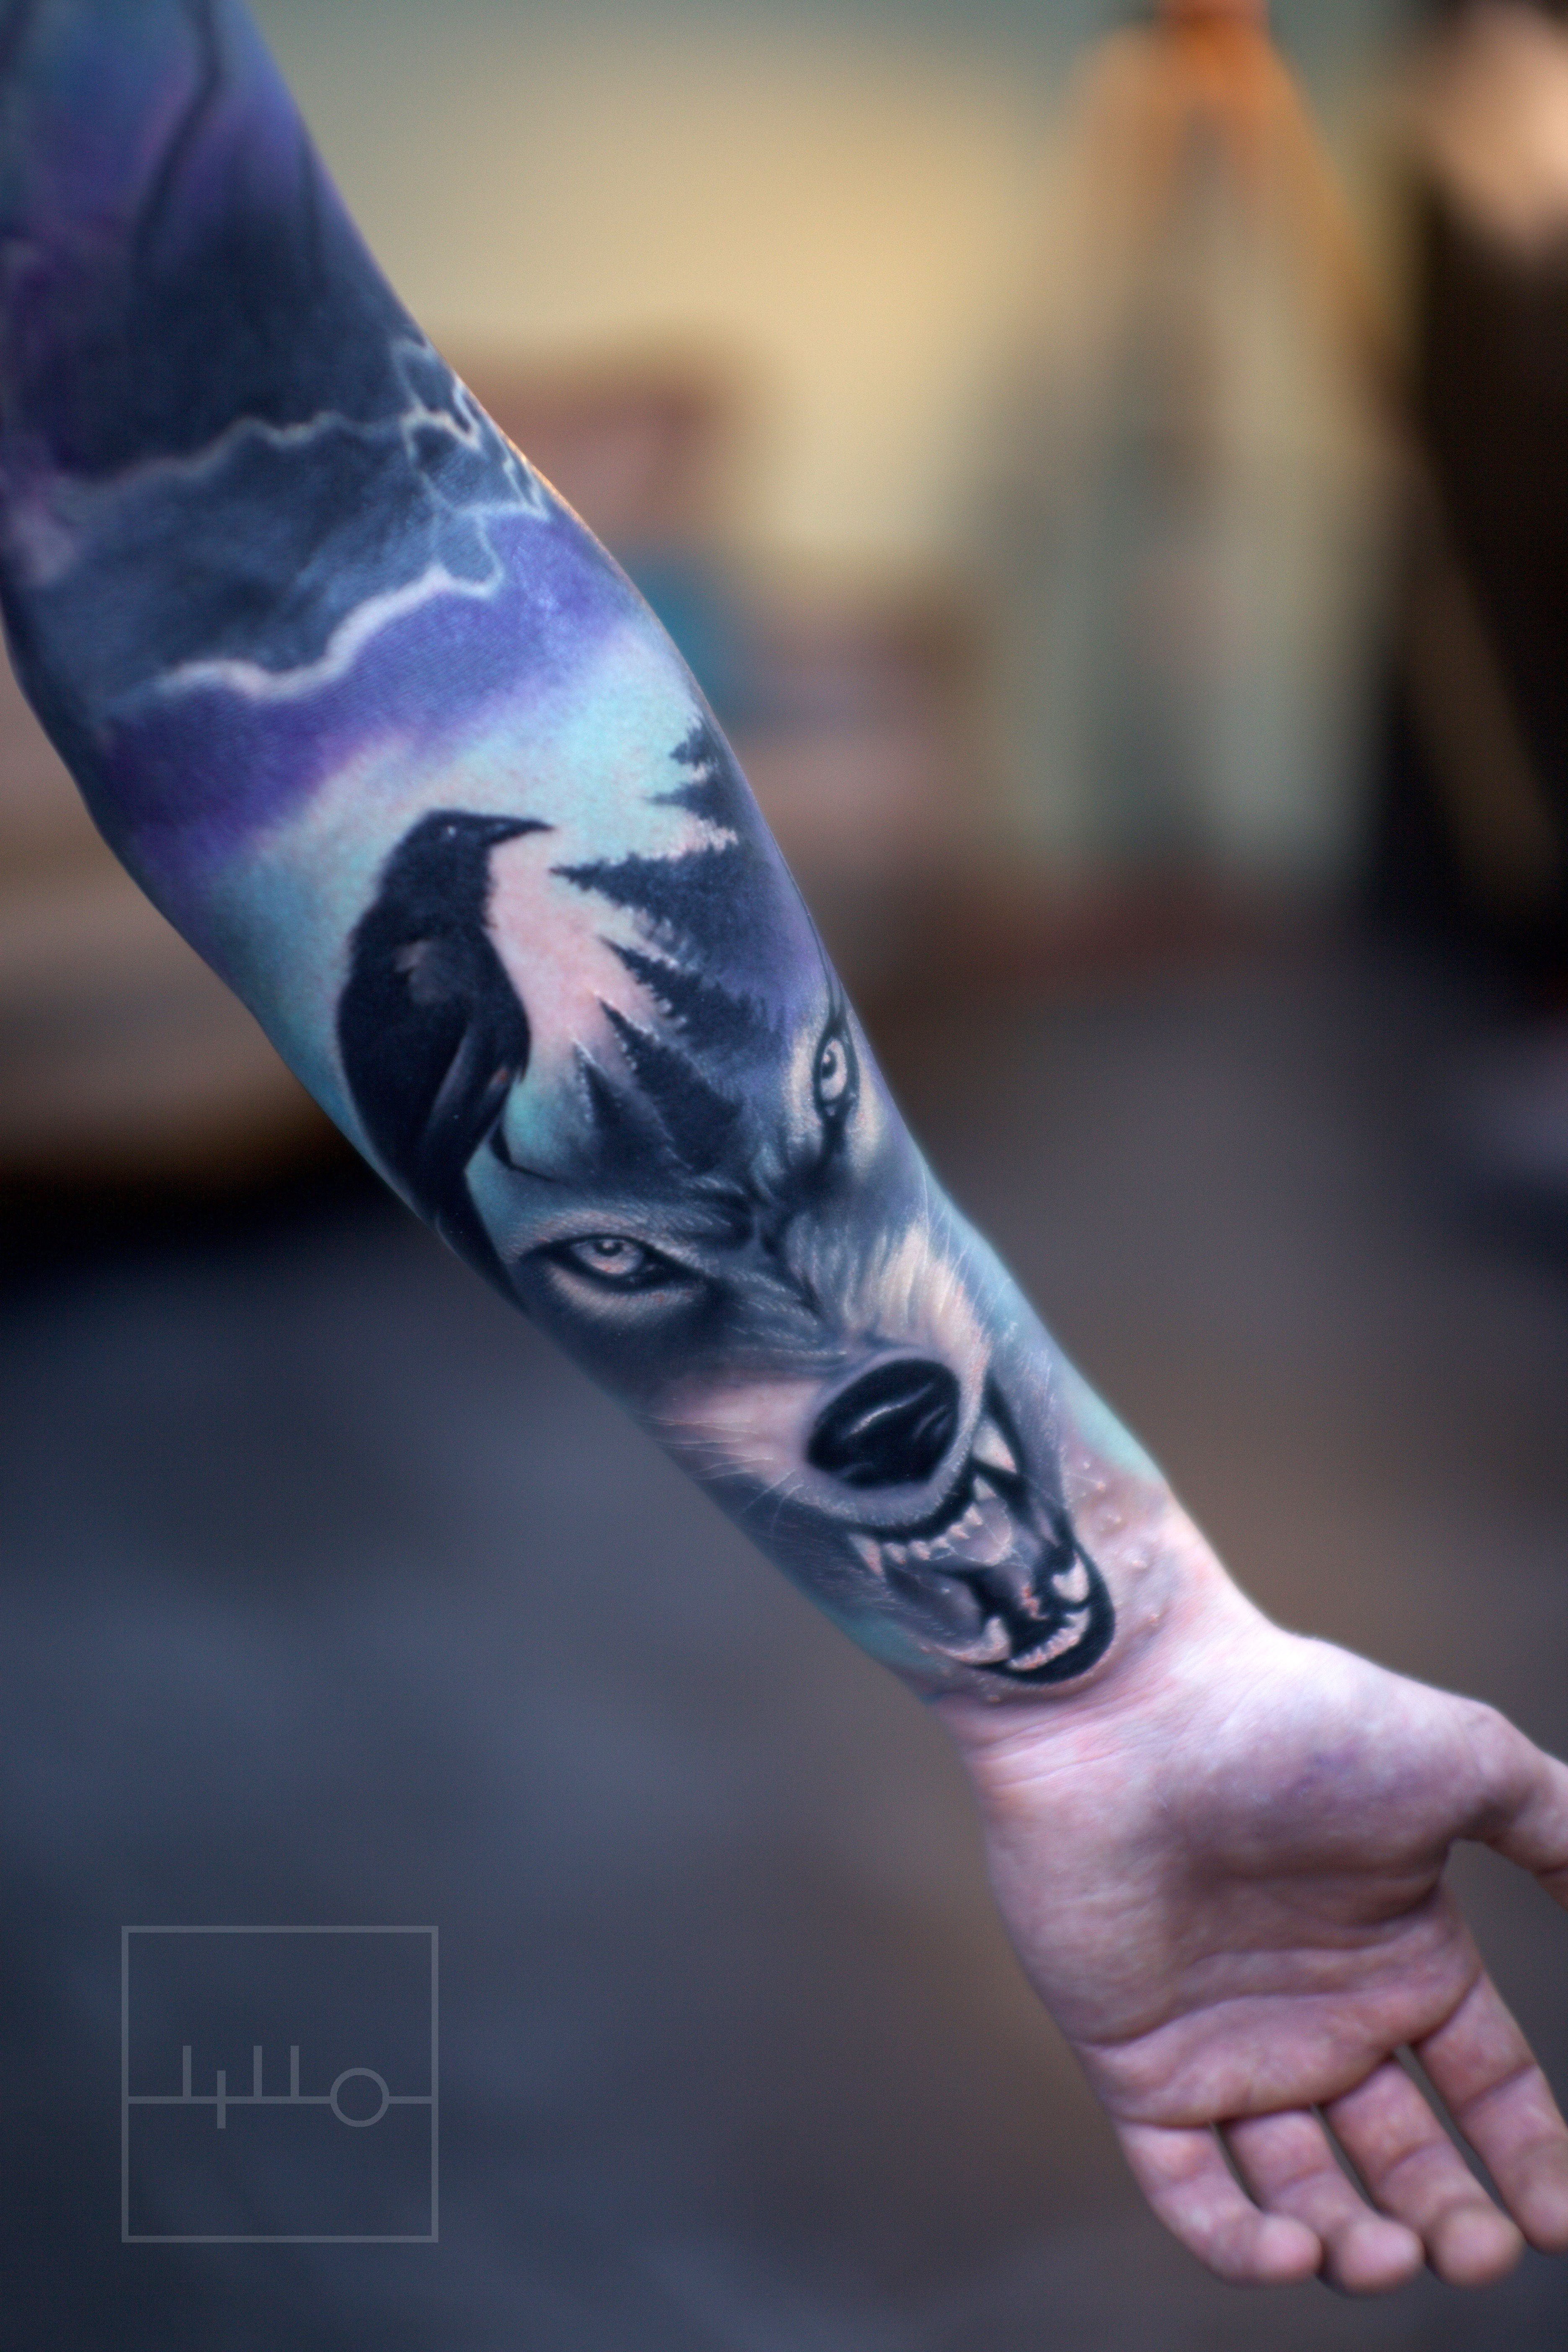 Wolf Tattoo Realistic Color Forest Crow Rainer Lillo Backbone Tattoo And Art Gallery 2016 Sleeve Tattoos Body Art Tattoos Wolf Tattoos